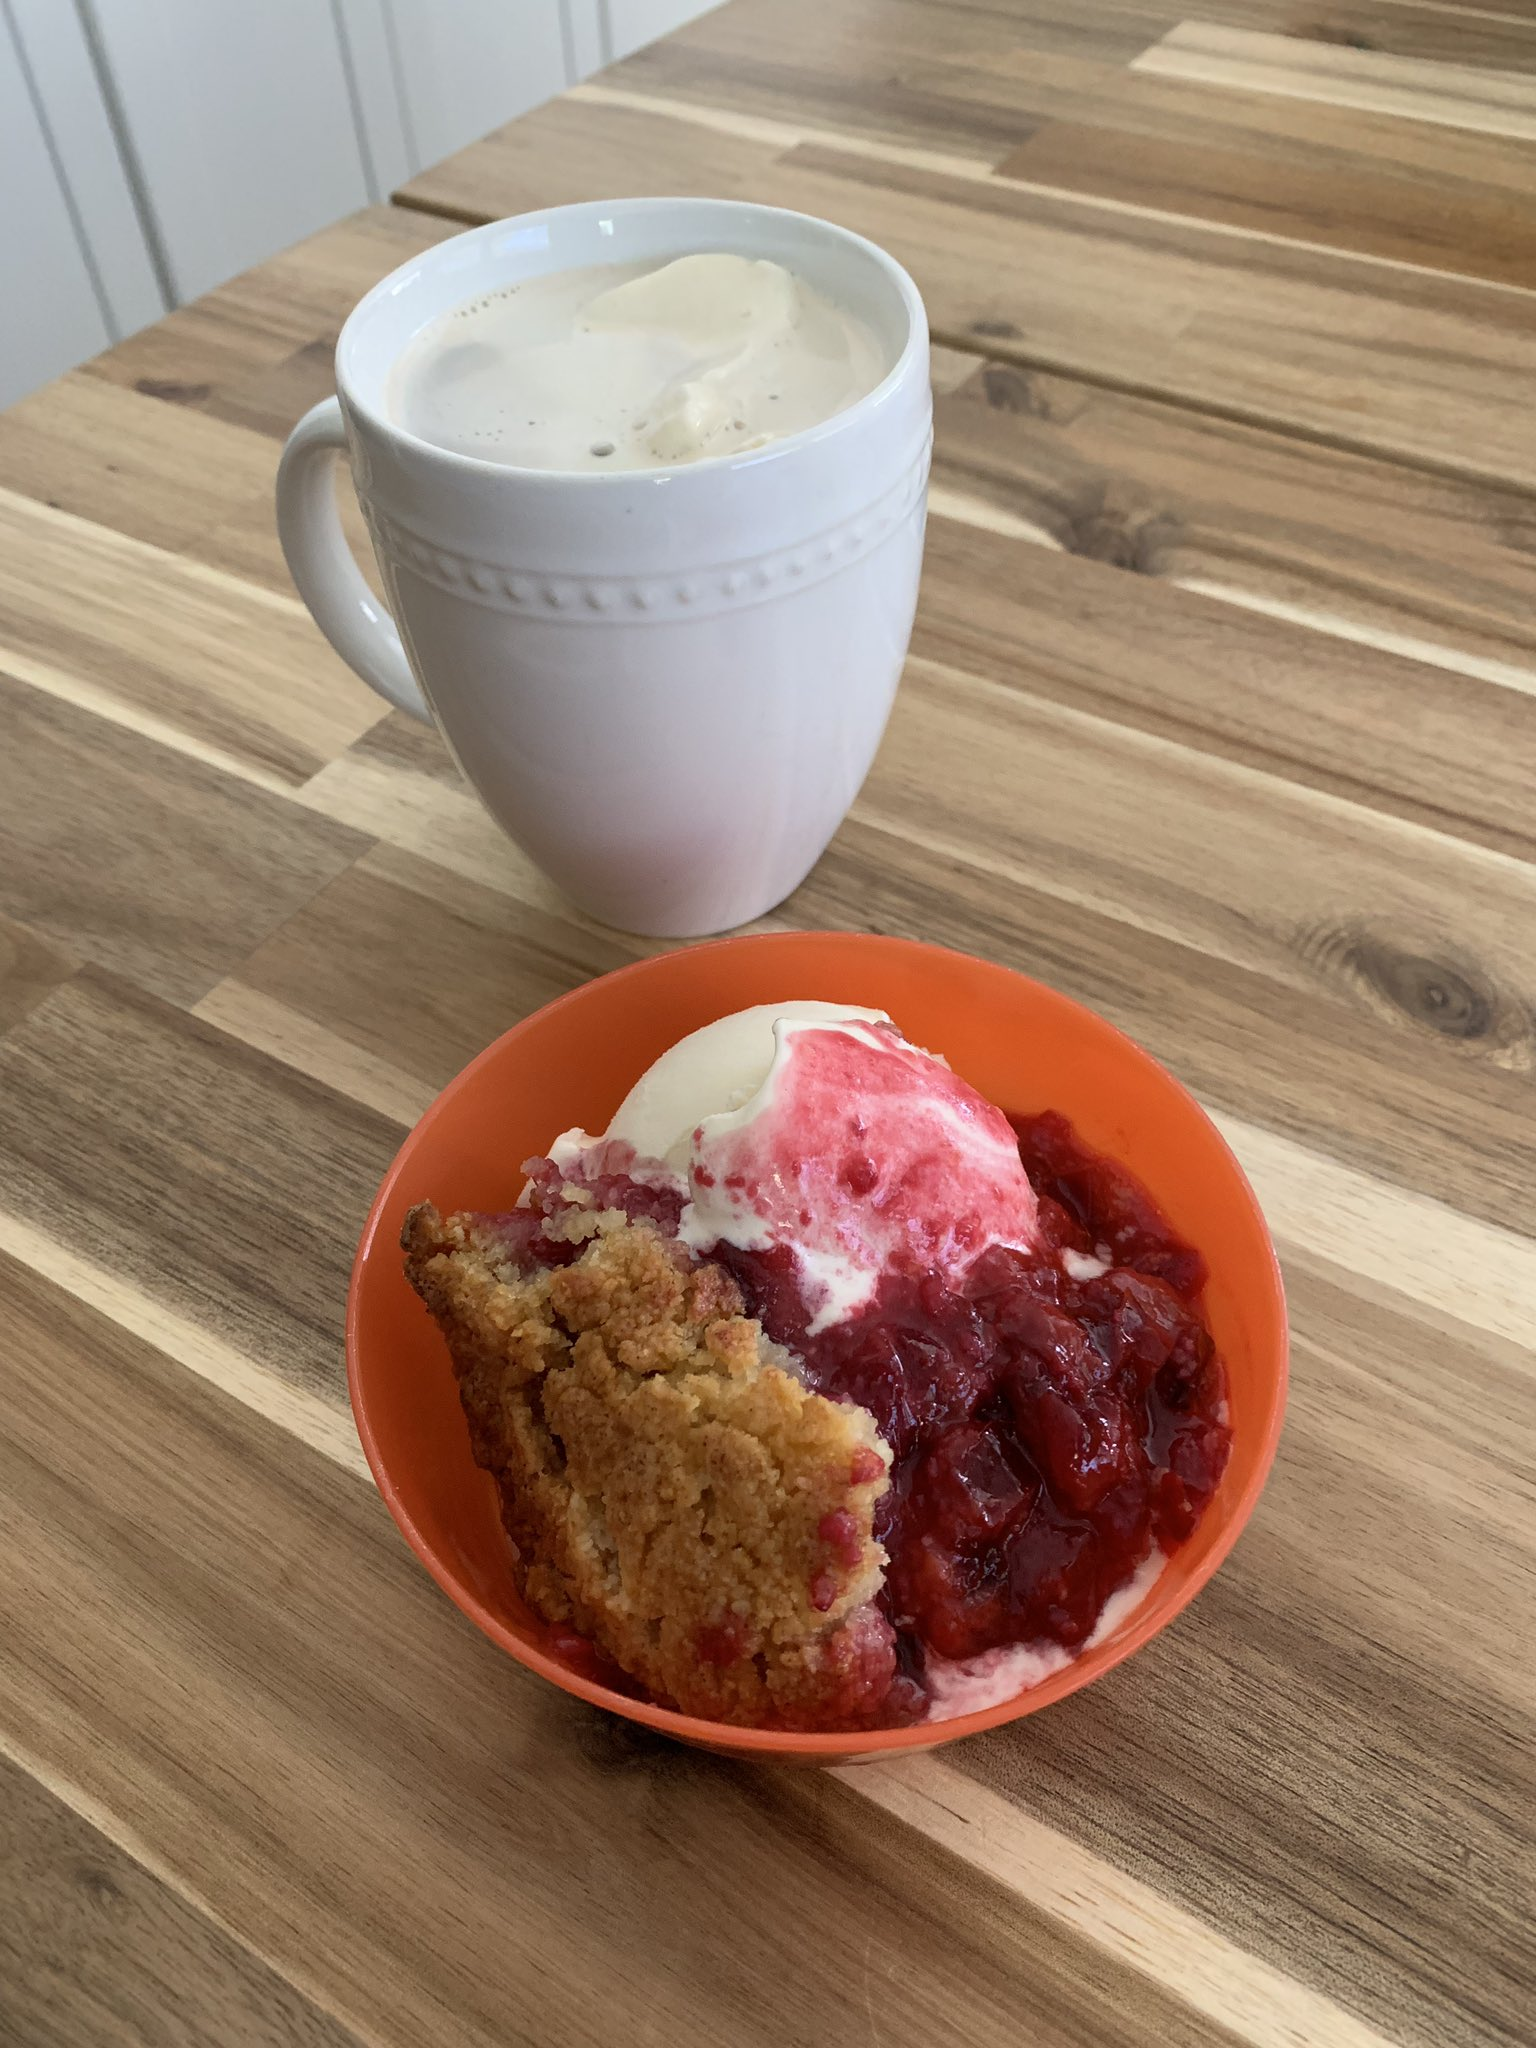 It's plum cobbler and affogato…